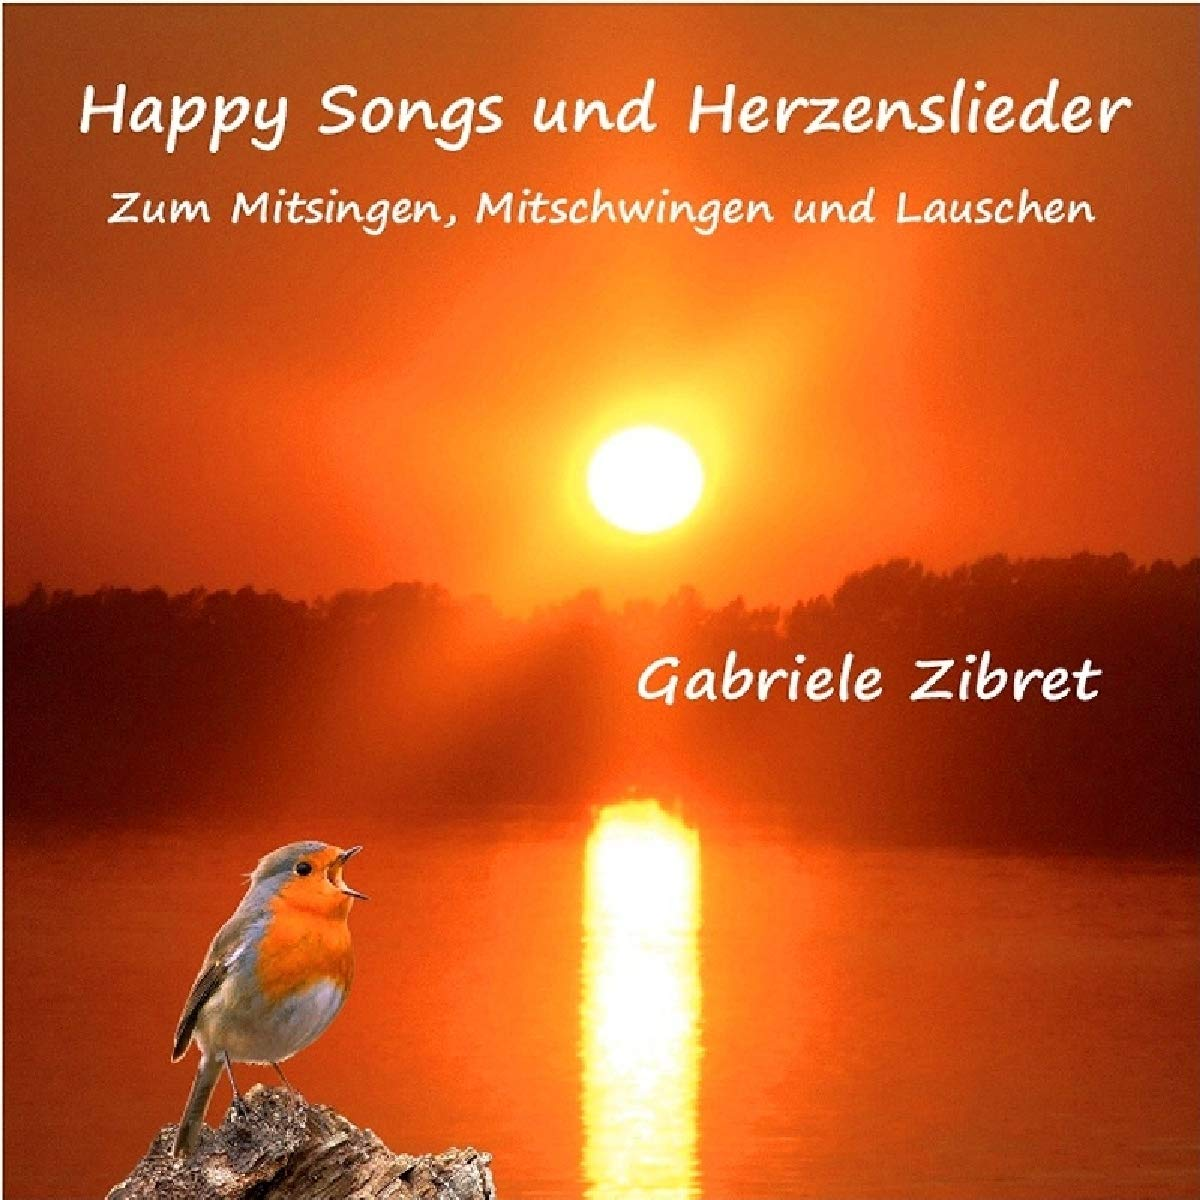 Happy Songs und Herzenslieder Cover art